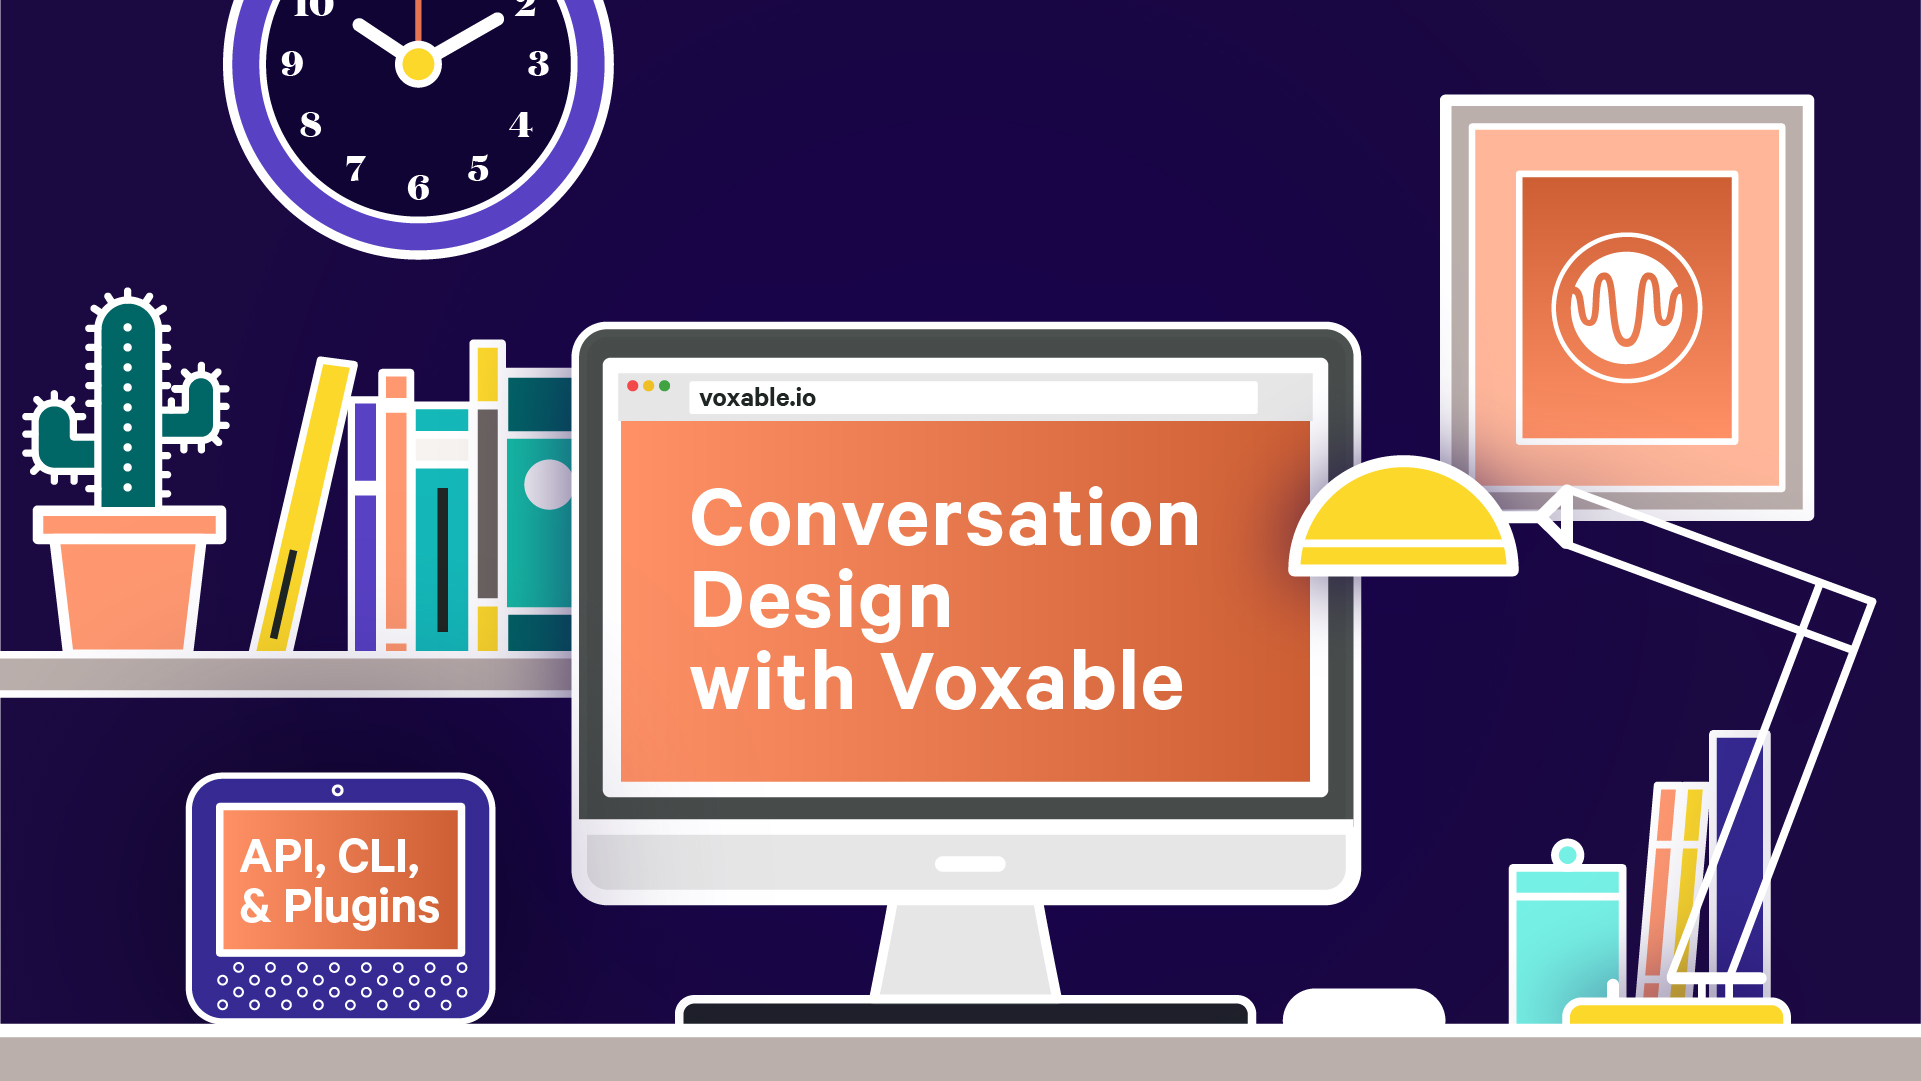 """An illustration of a desk with a computer and smart speaker. The computer displays the text """"Conversation Design with Voxable"""" and the smartspeaker displays the text """"API, CLI, & Plugins."""""""